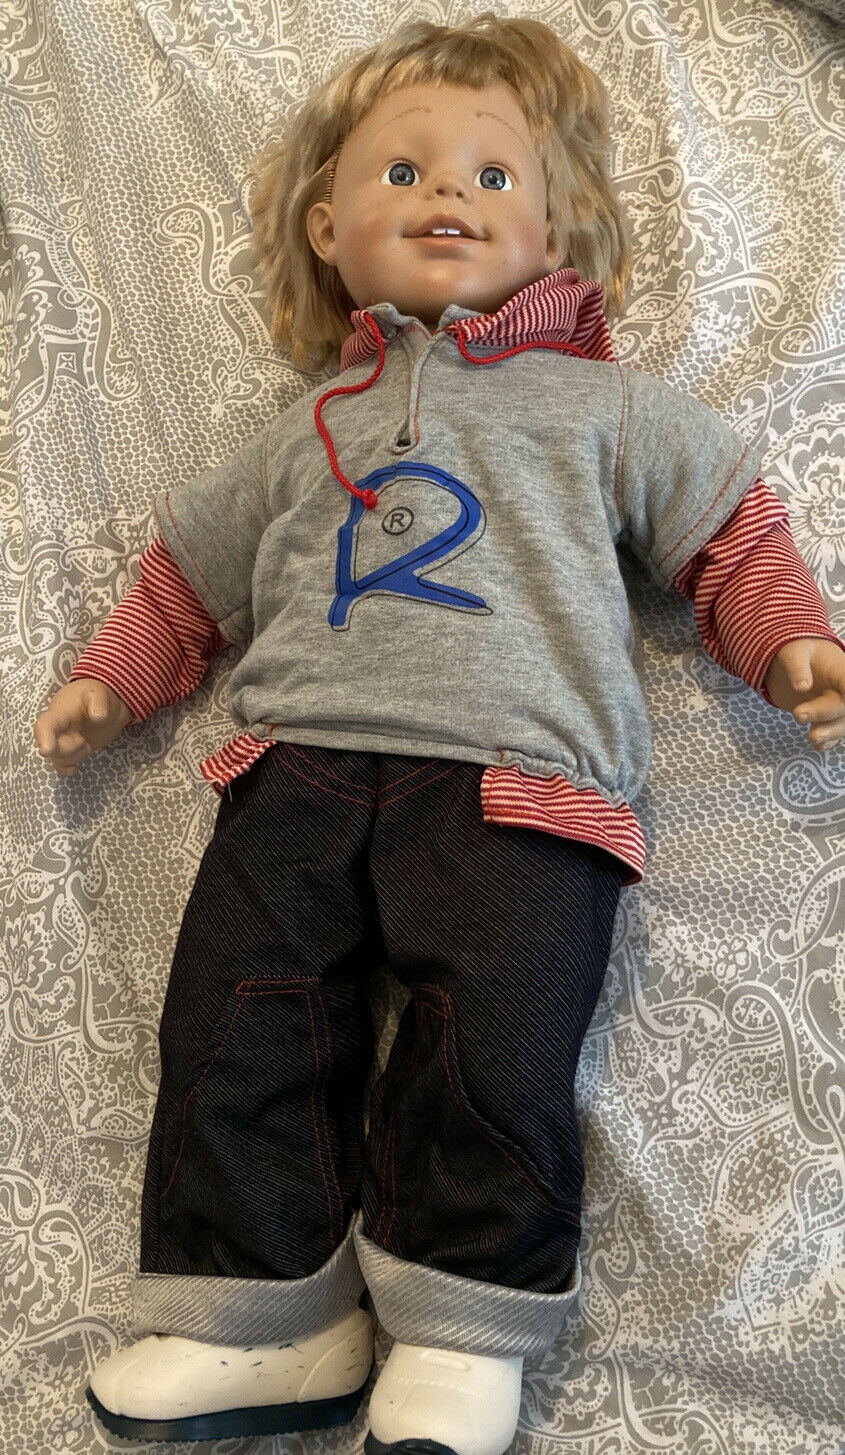 """Smoby Robbie/Robert Toddler Doll Pico 2004 24"""" Tall Vinyl/Cloth Body + Outfit"""